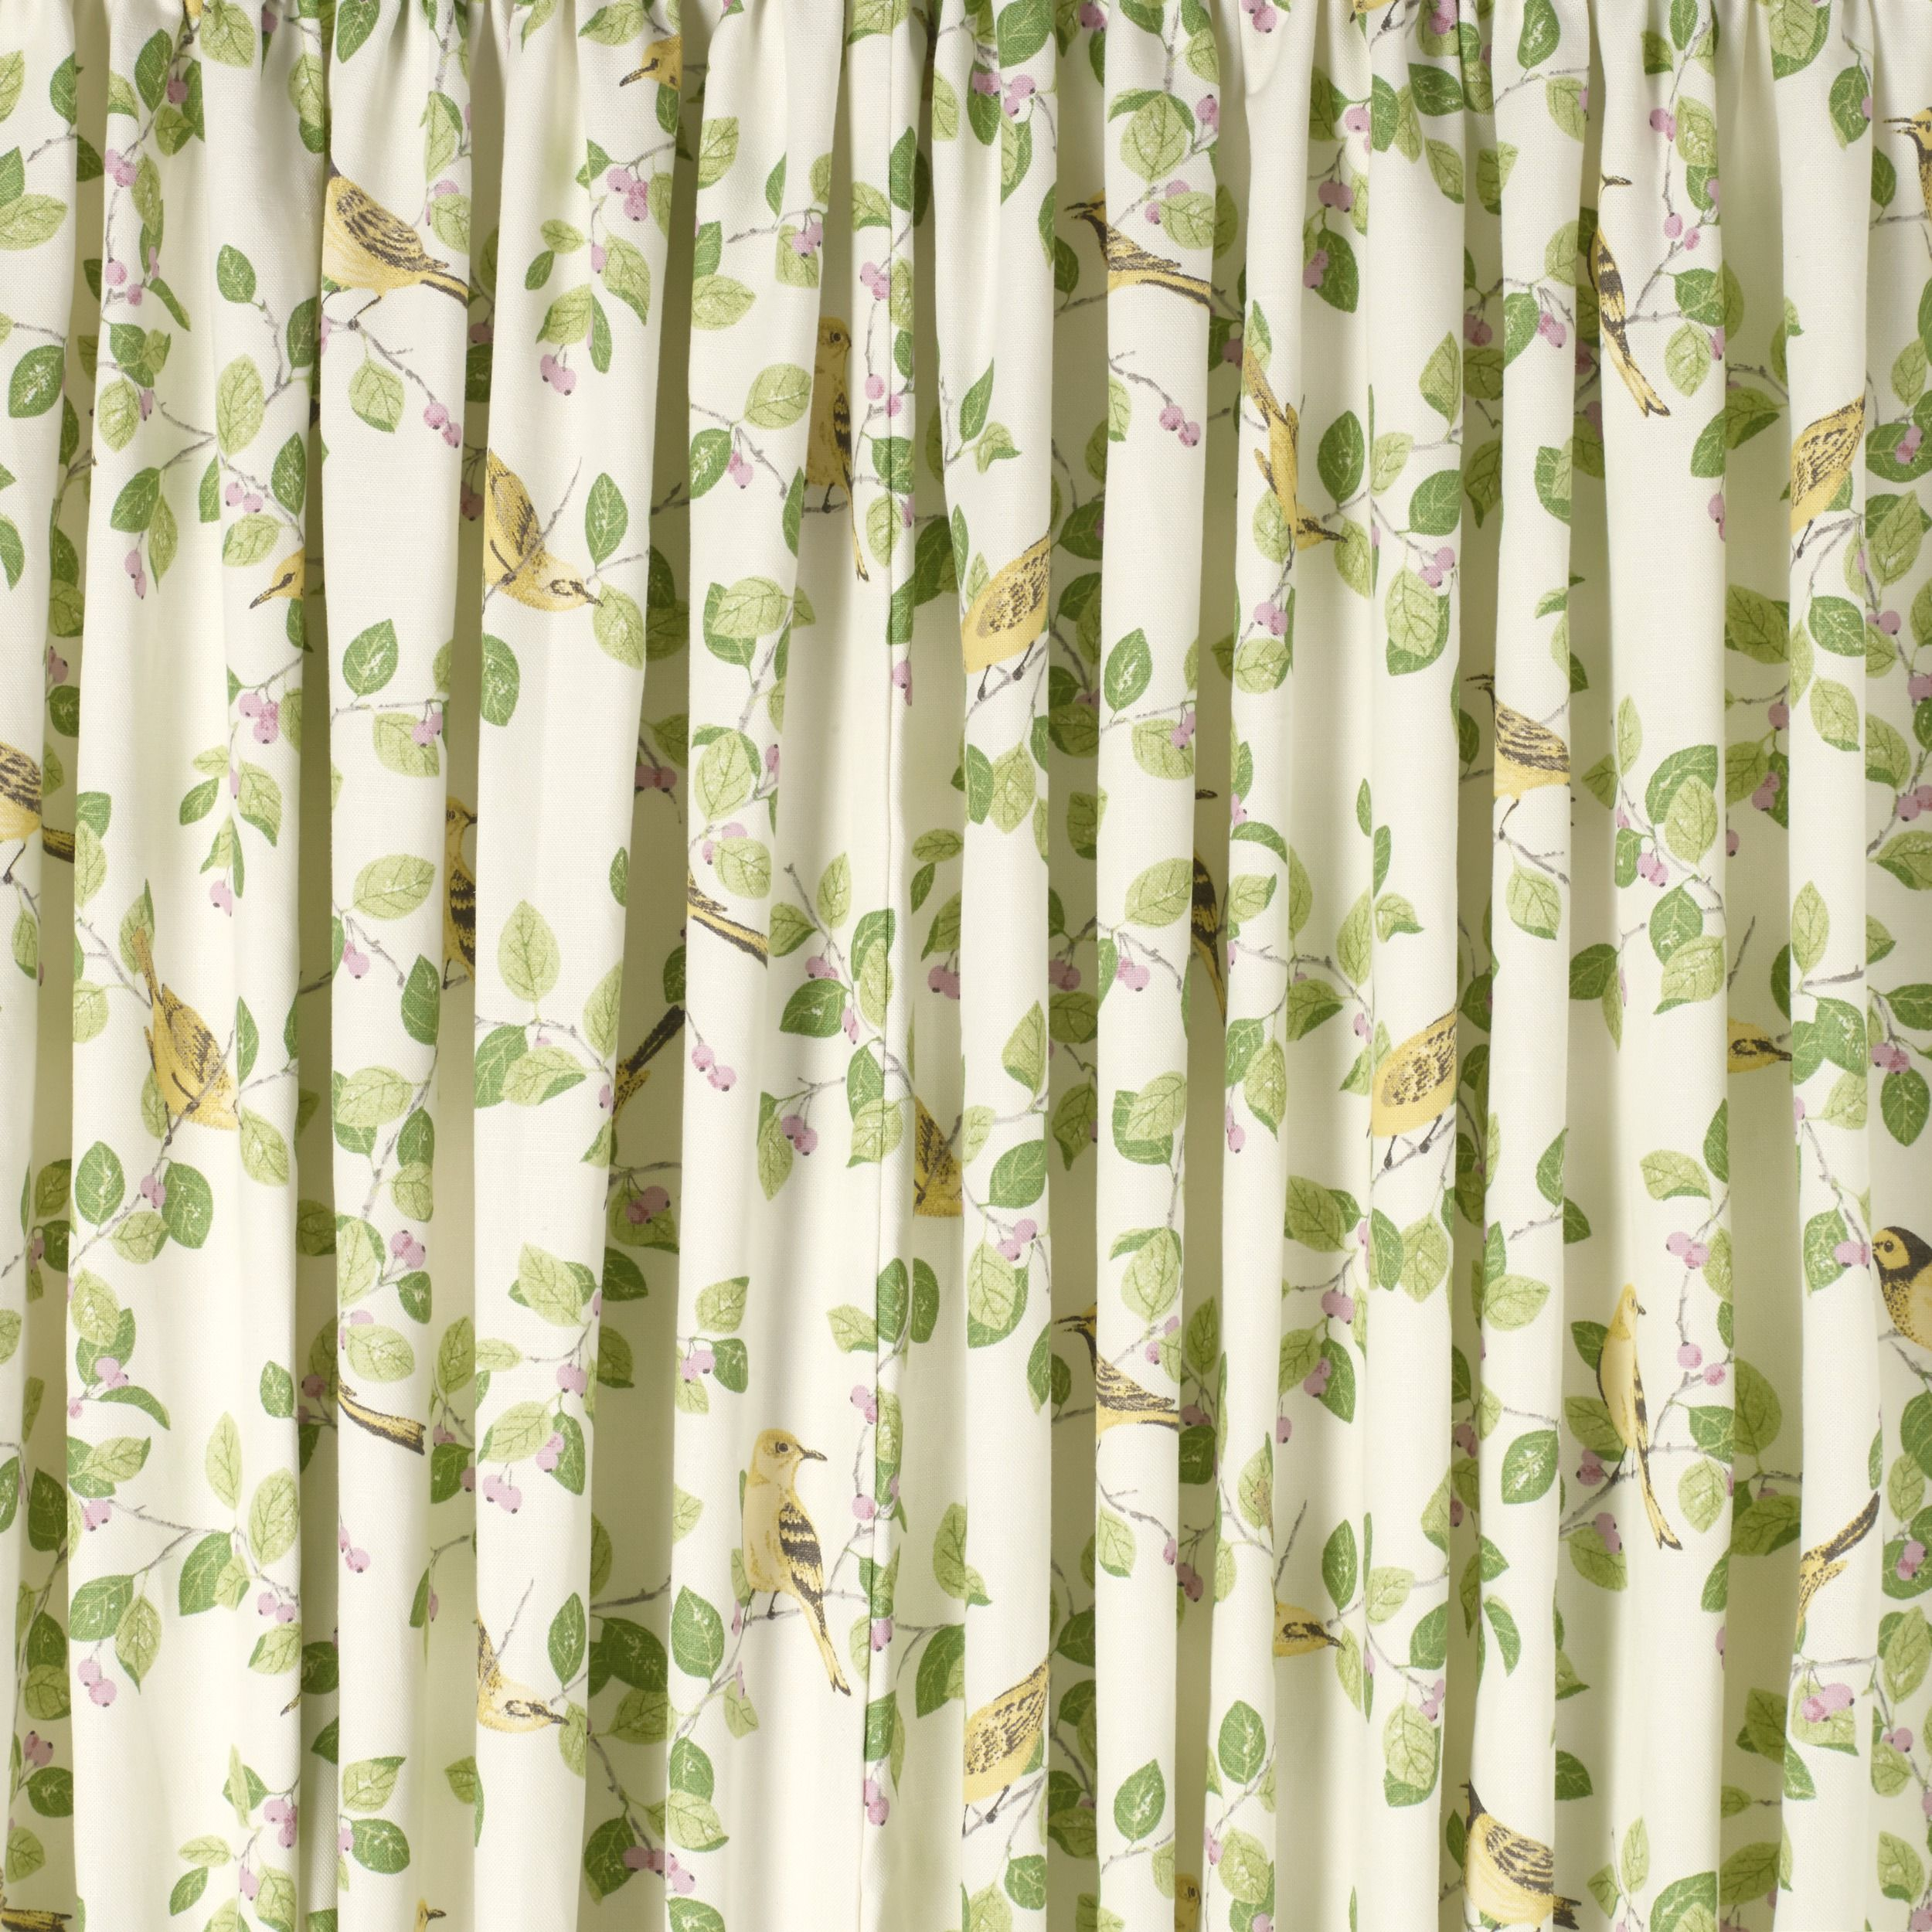 Aviary Curtains - Laura Ashley | New house ideas | Pinterest | Laura ...